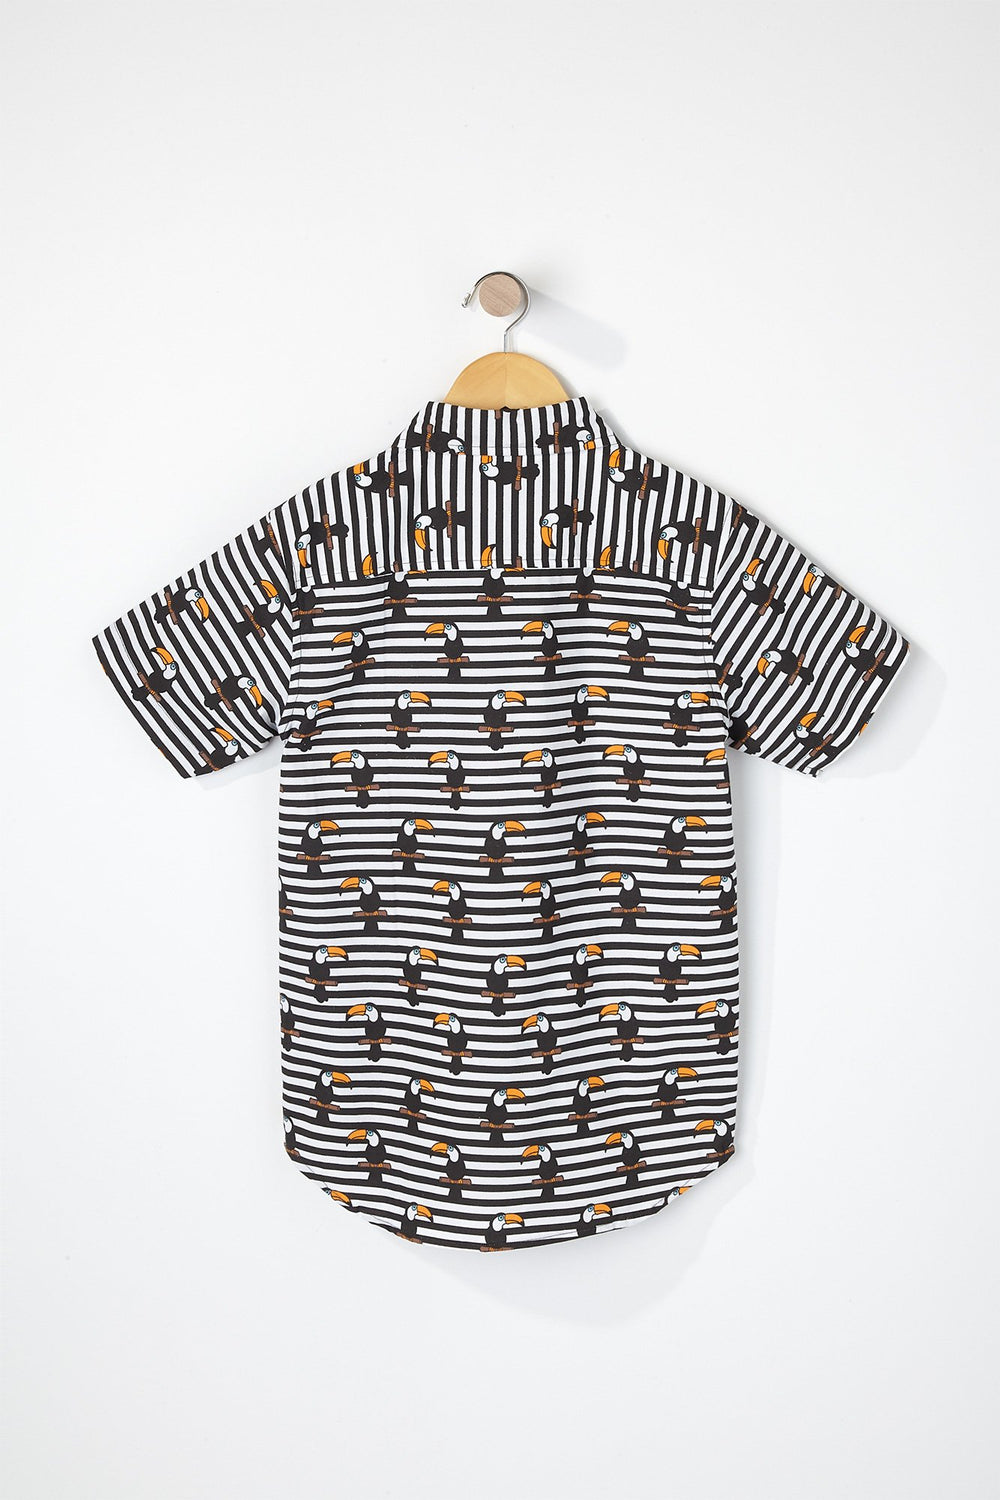 West49 Boys Toucan Button-Up Shirt Black with White